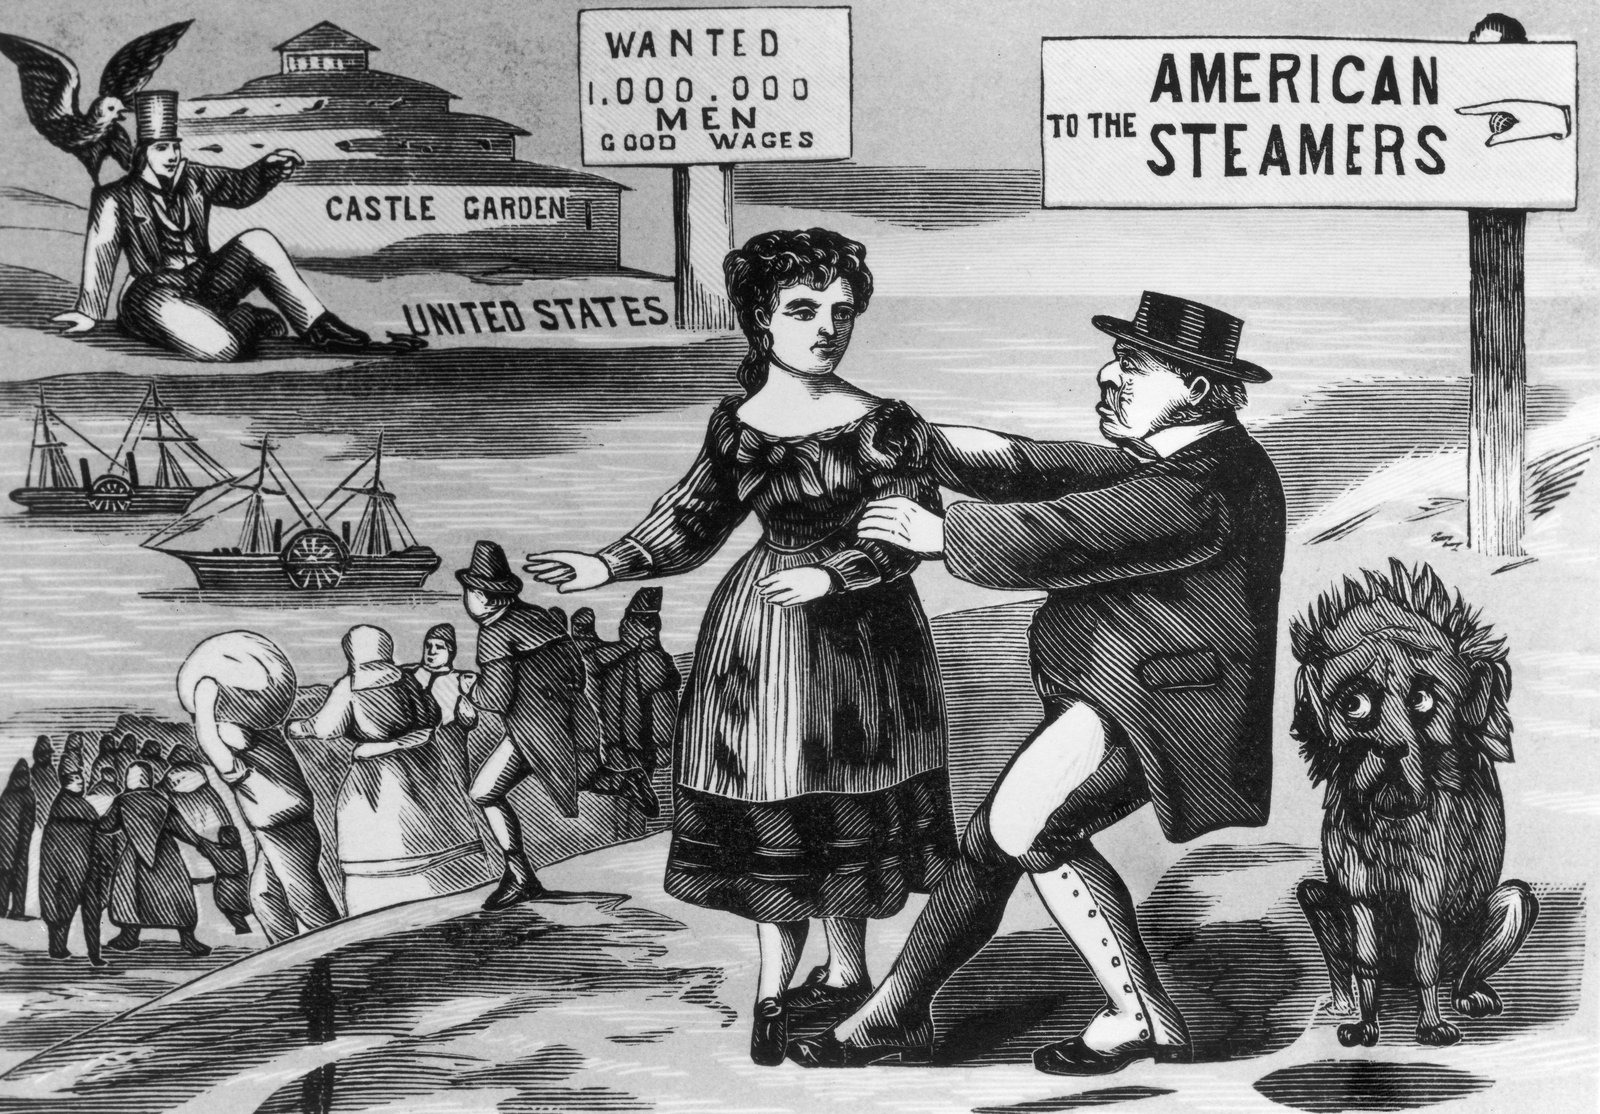 Image - An Irish man tries to restrain a woman tempted by a new life in the USA in this circa 1855 engraving. Source: Fotosearch/Getty Images